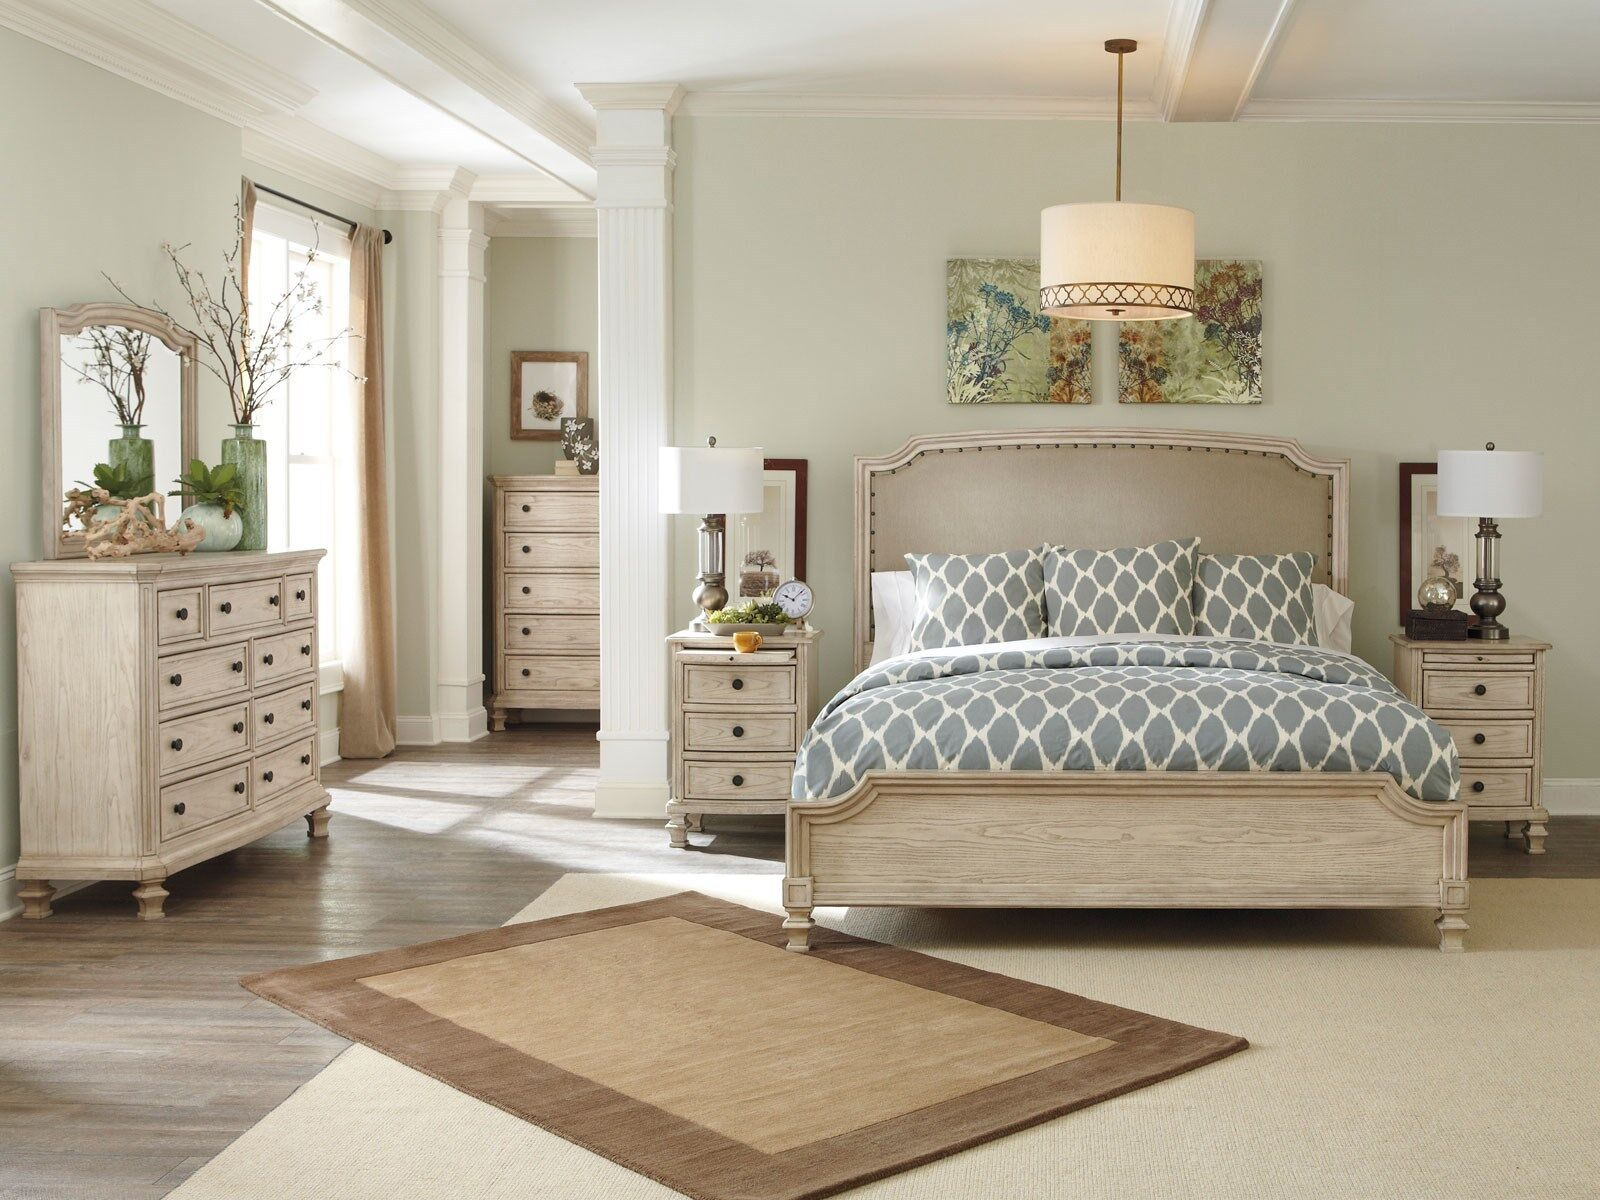 Ashley Furniture King Bedroom Sets 1600 x 1200